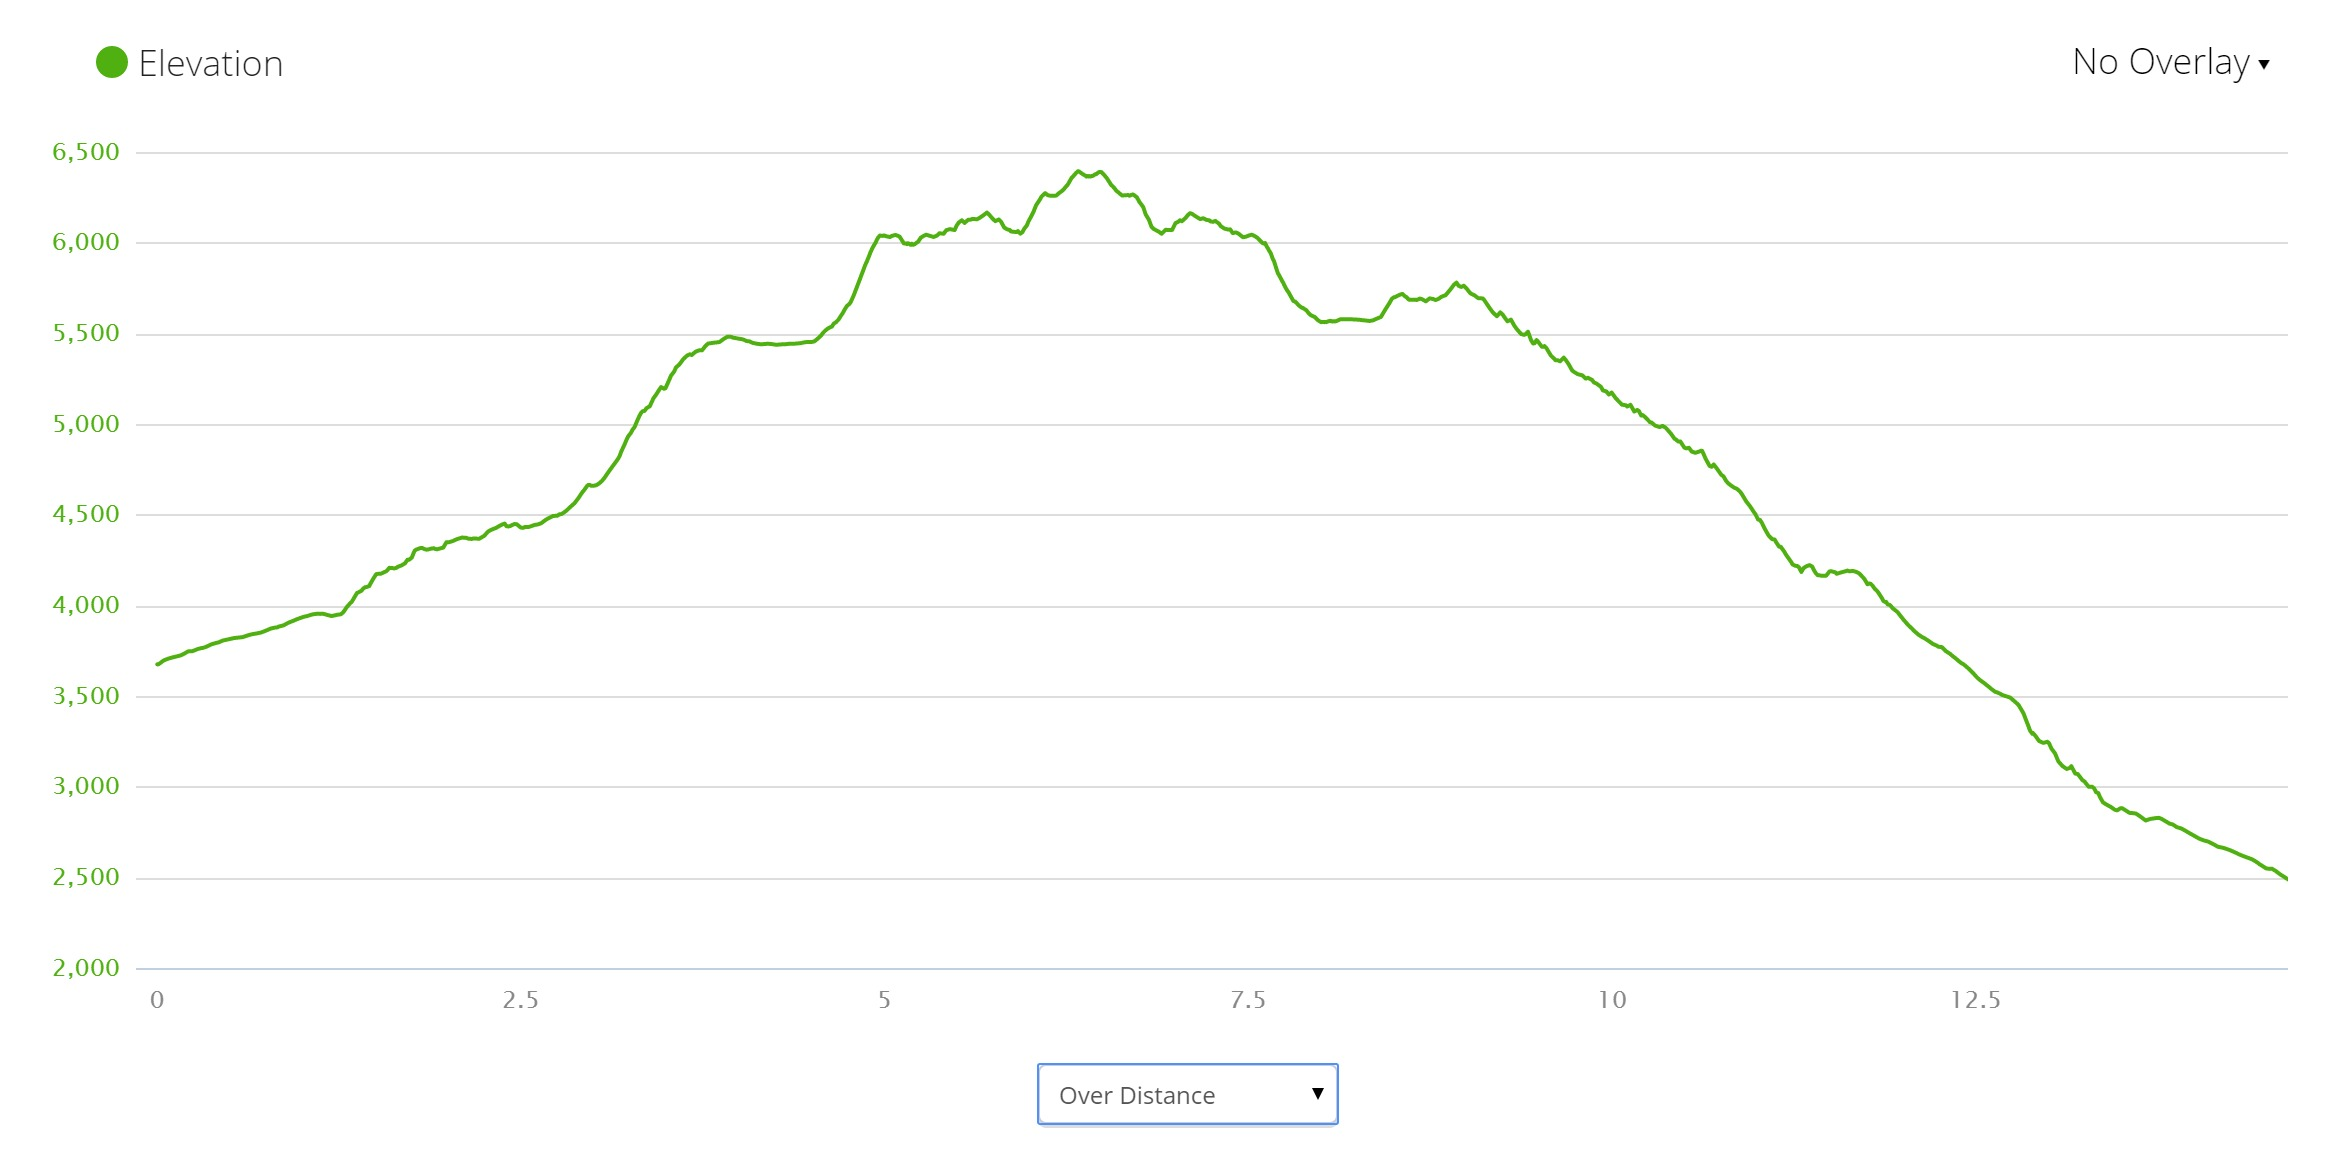 Tongariro Alpine Crossing Elevation Profile